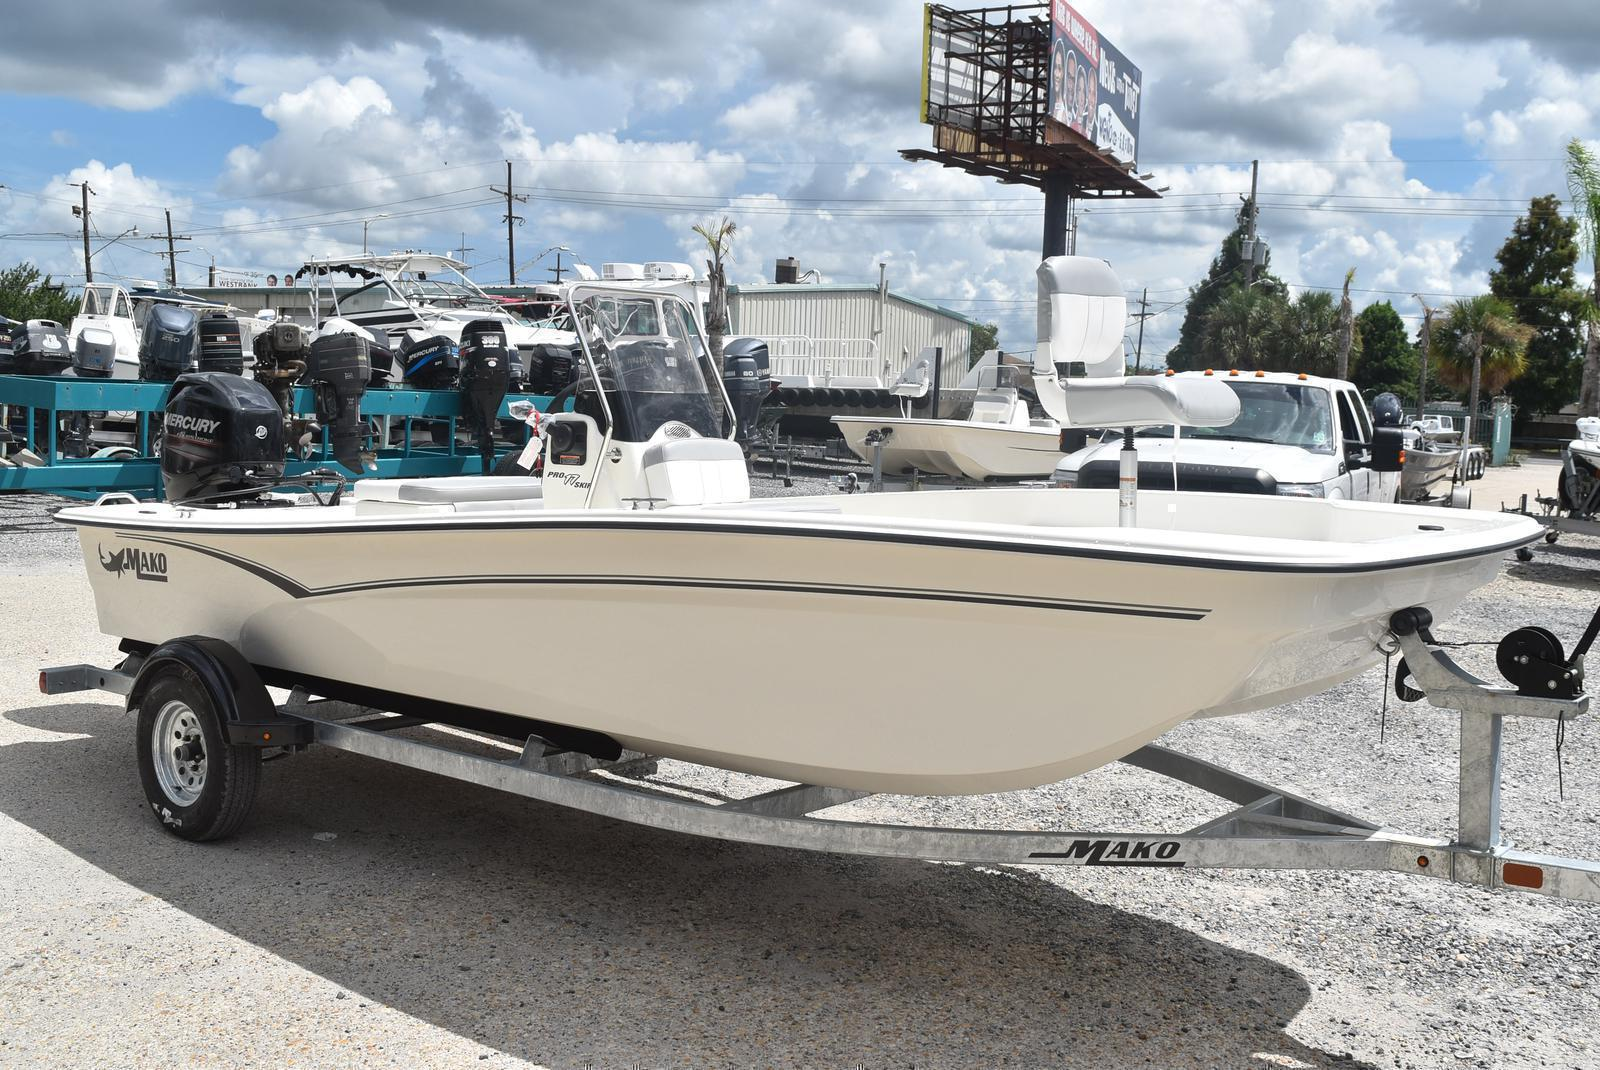 2020 Mako boat for sale, model of the boat is Pro Skiff 17, 75 ELPT & Image # 698 of 702